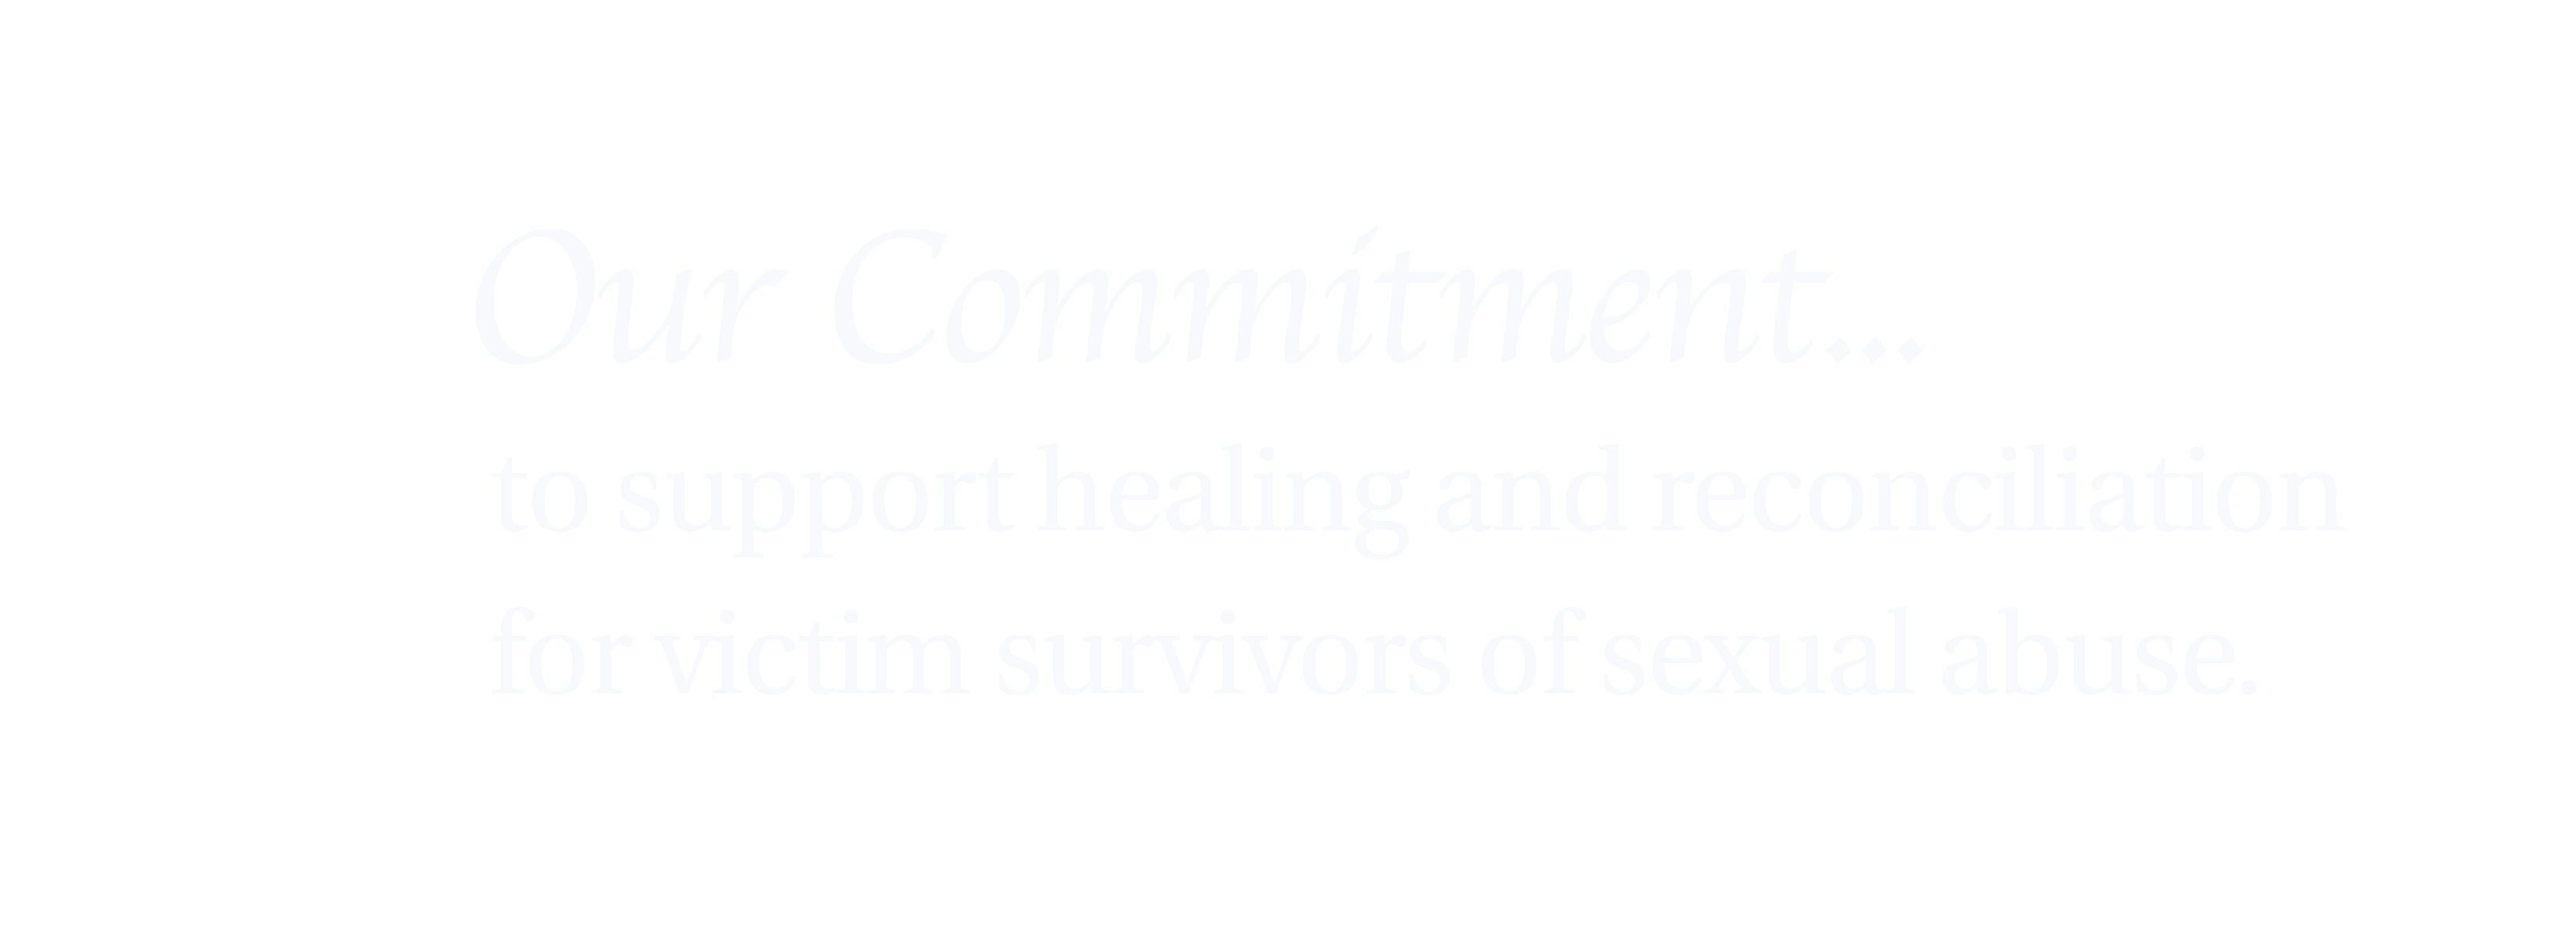 Our Solemn Commitment - to support healing and reconciliation for victim survivors of sexual abuse of minors